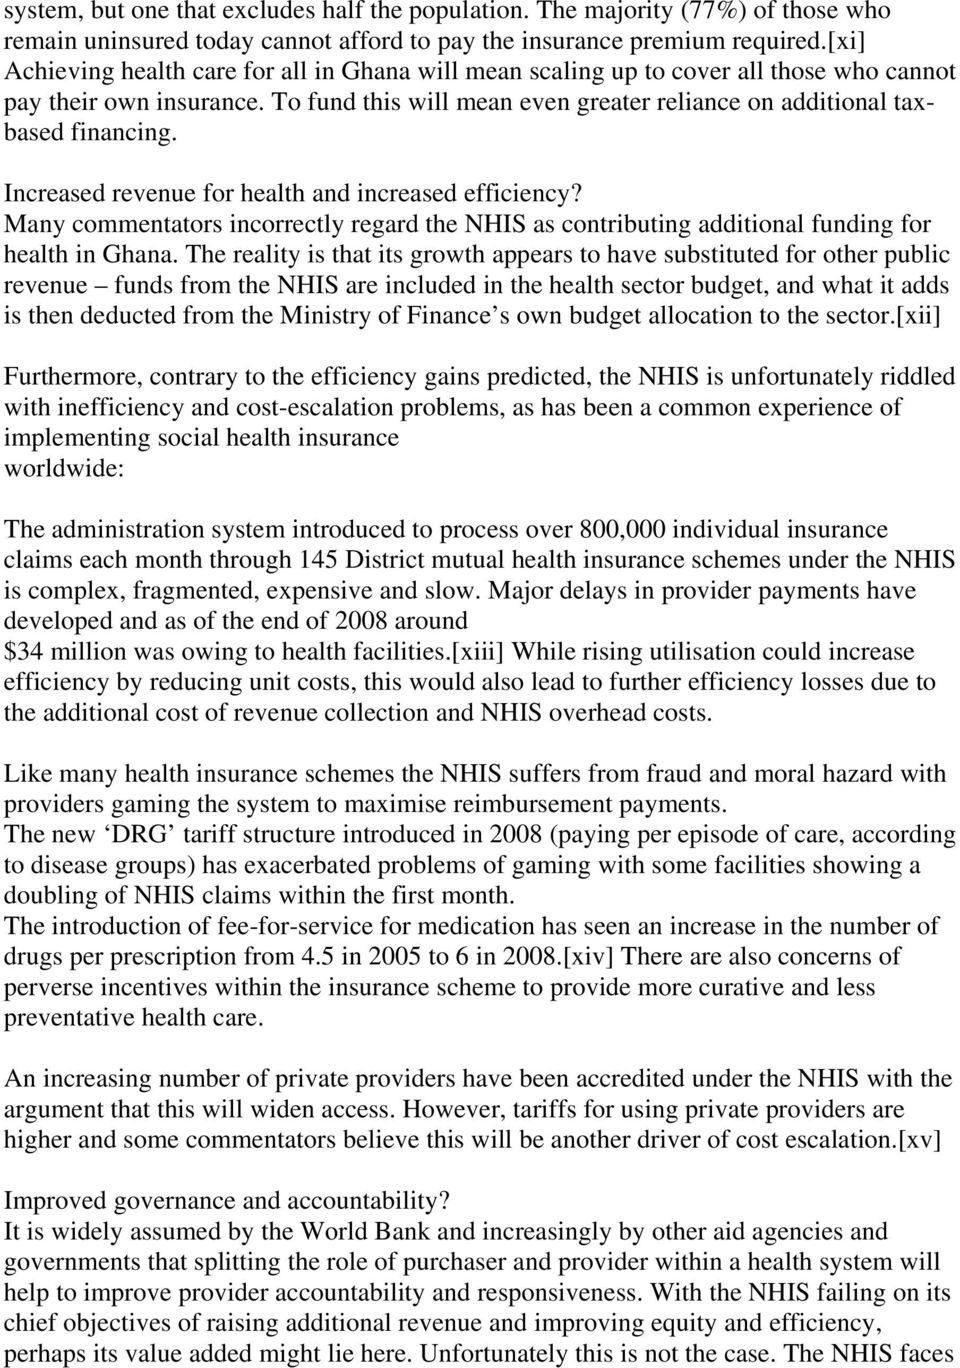 Increased revenue for health and increased efficiency? Many commentators incorrectly regard the NHIS as contributing additional funding for health in Ghana.